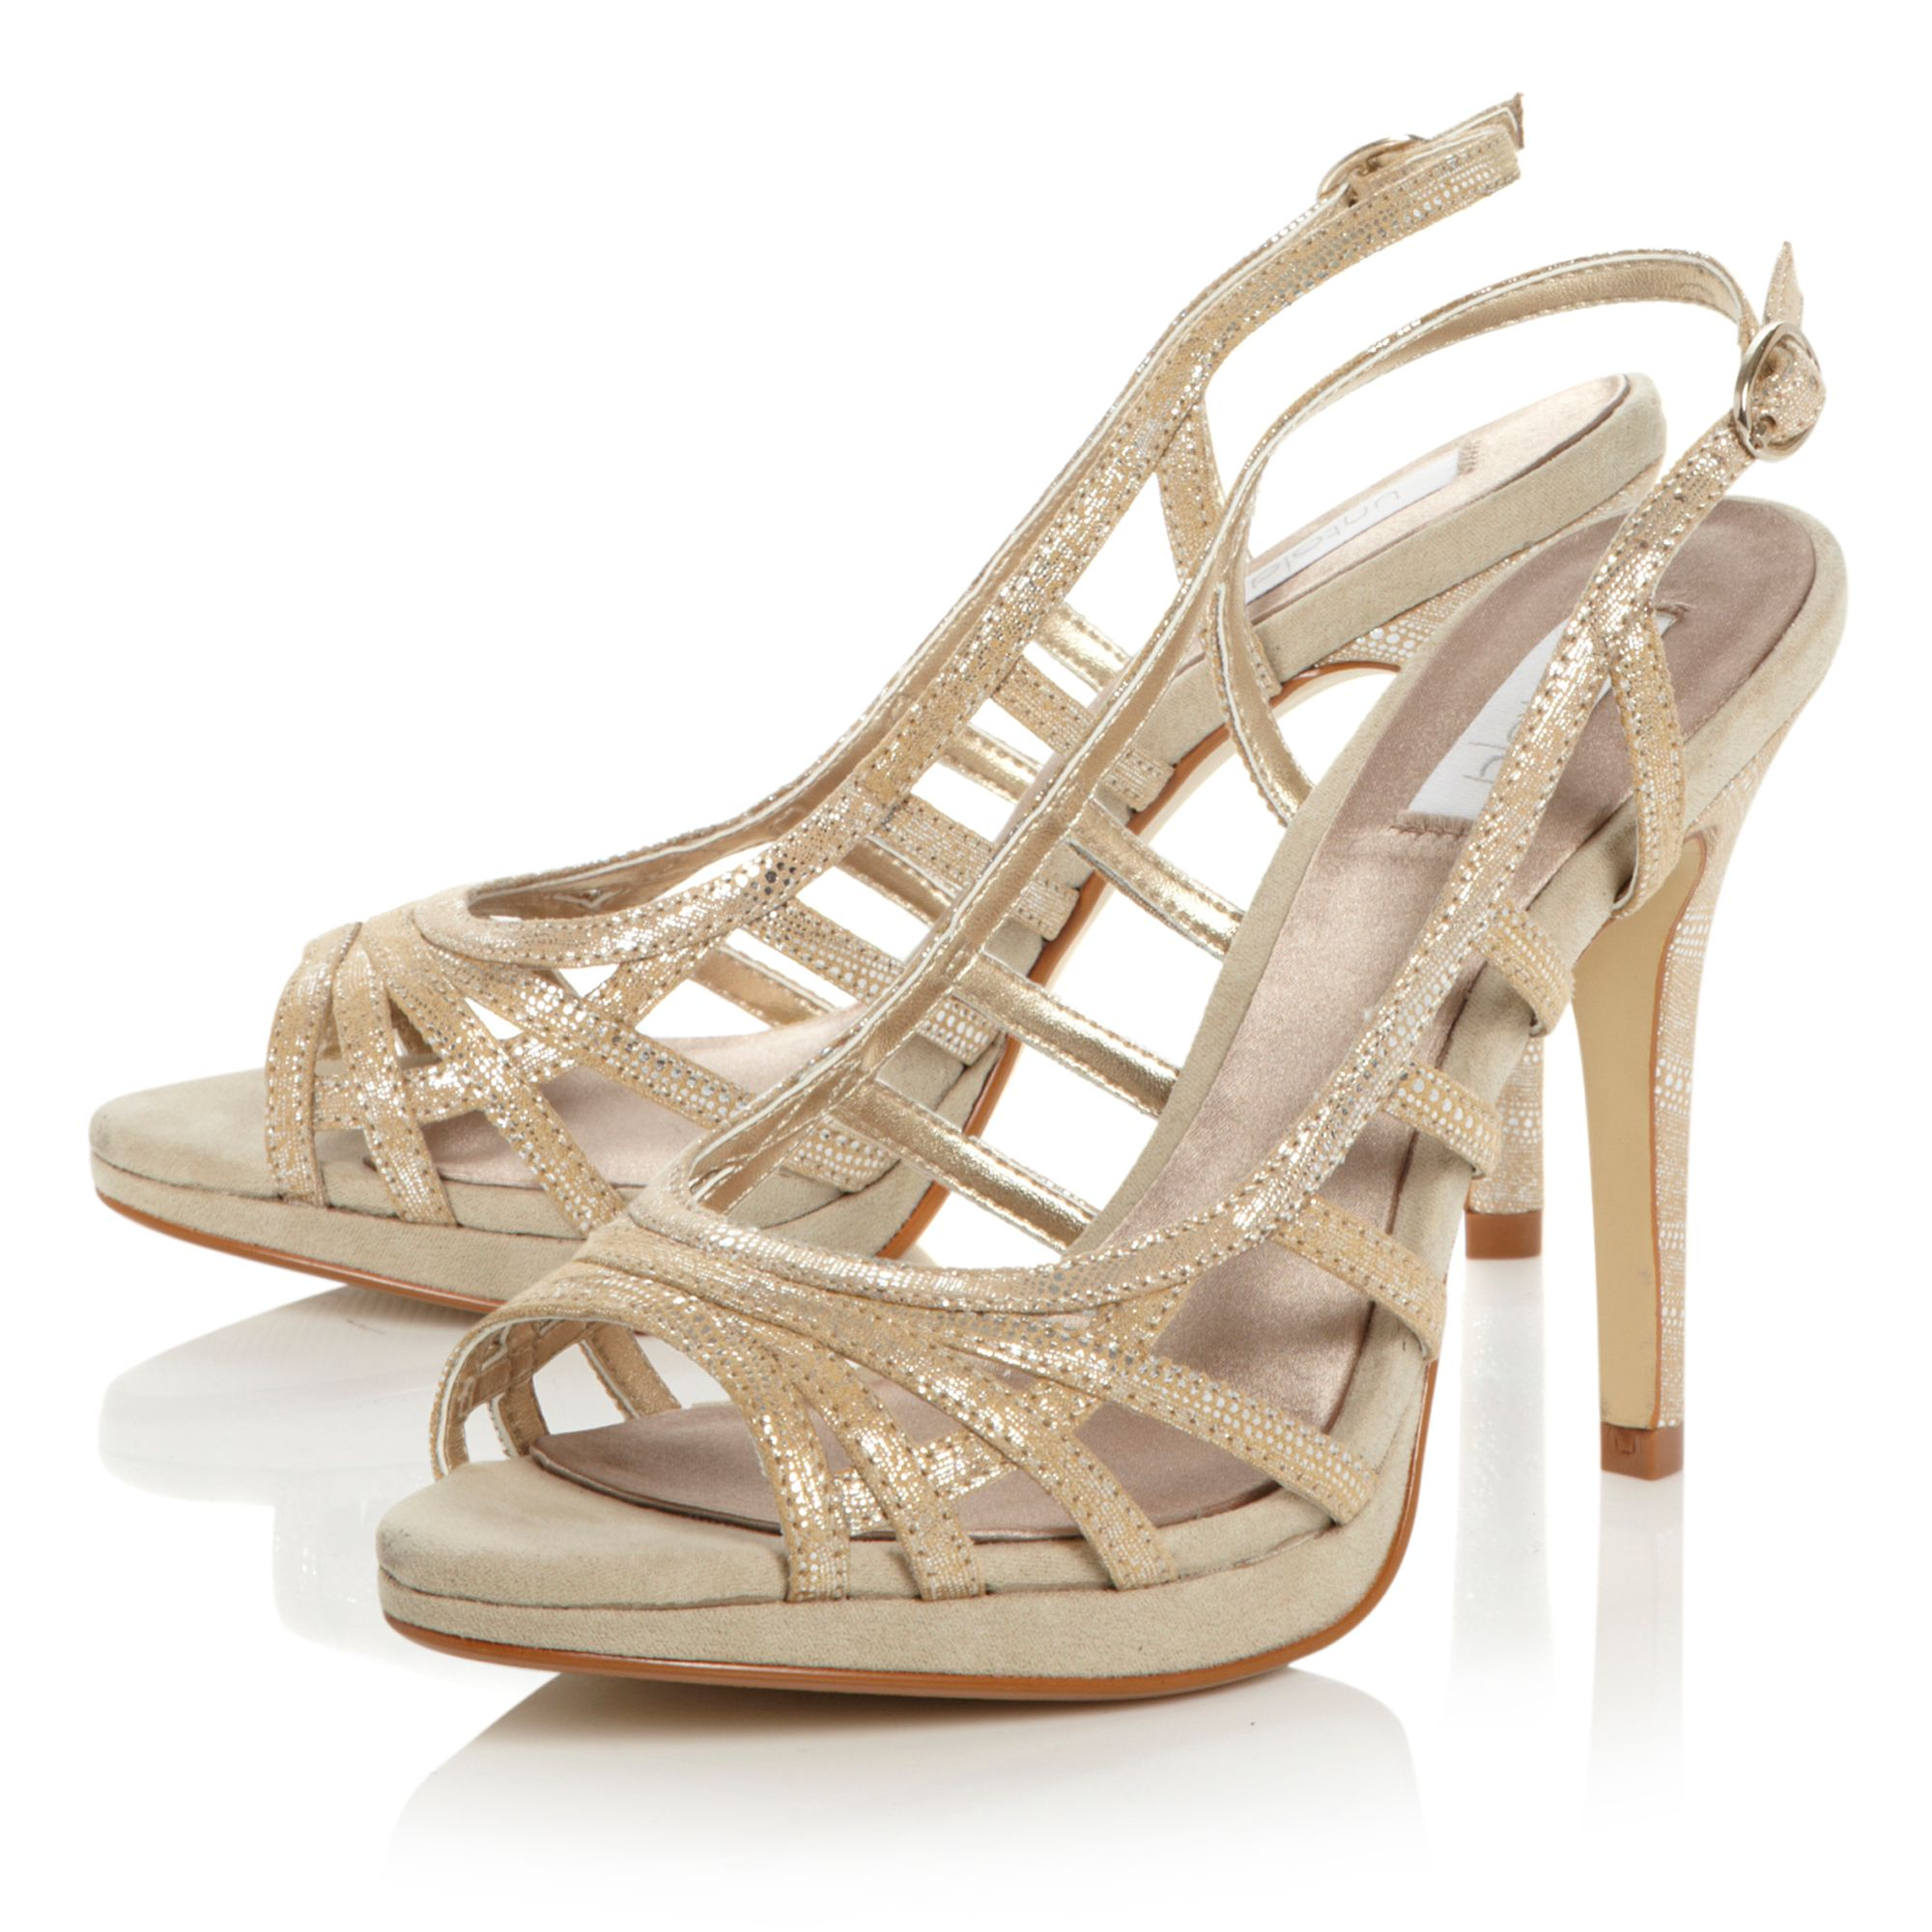 Heron strappy caged sandals